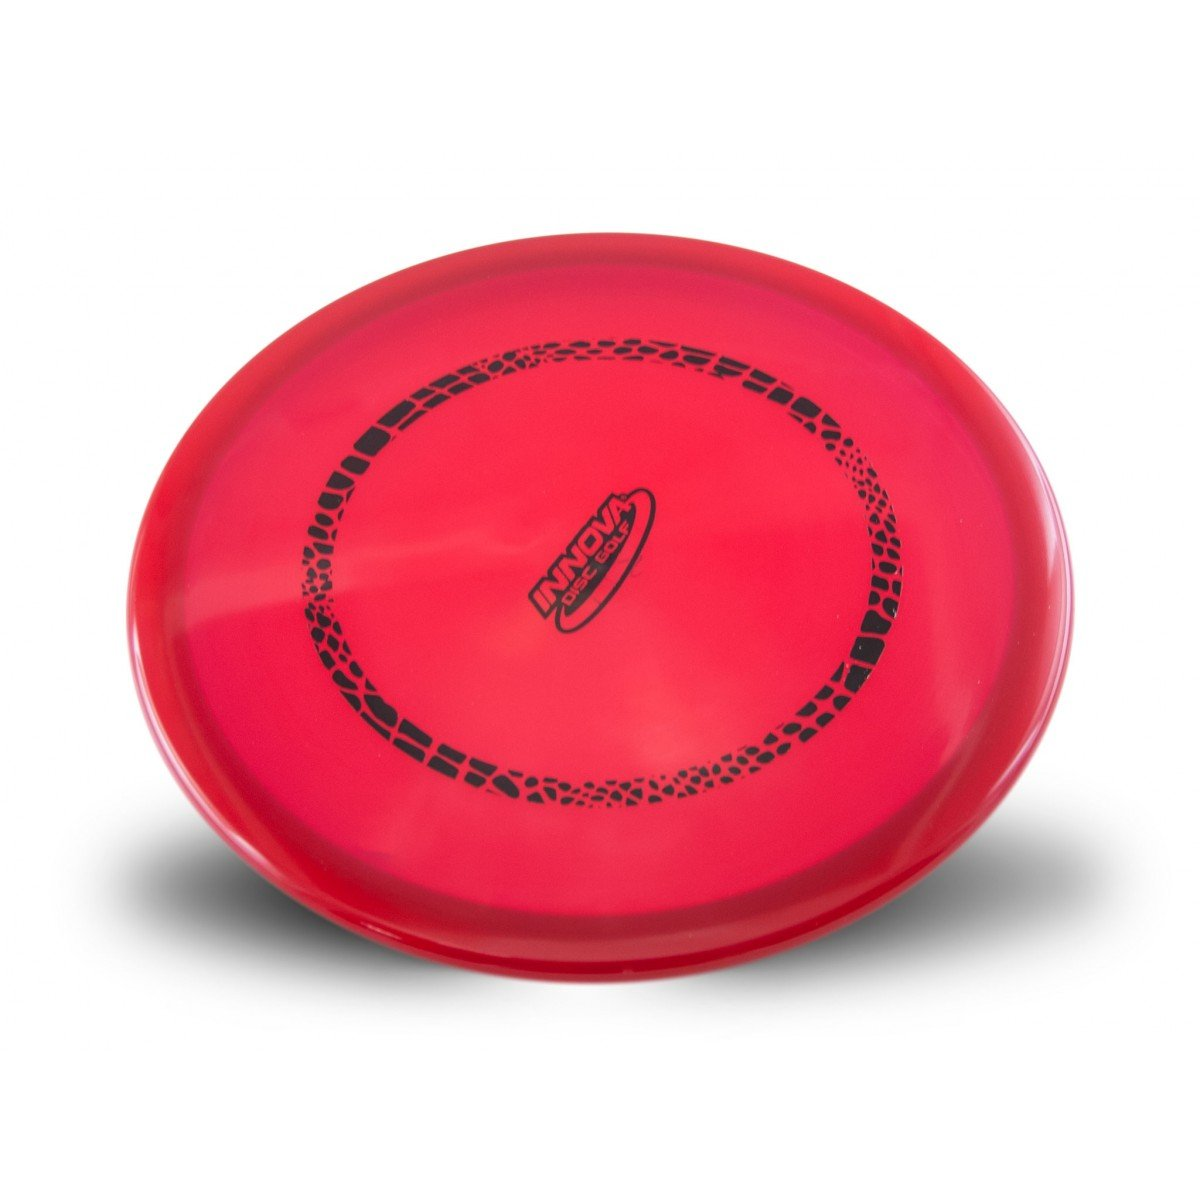 Innova Limited Edition CFR Pre-Release Champion Gator3 Mid-Range Golf Disc [Colors May Vary] - 173-175g by Innova Disc Golf